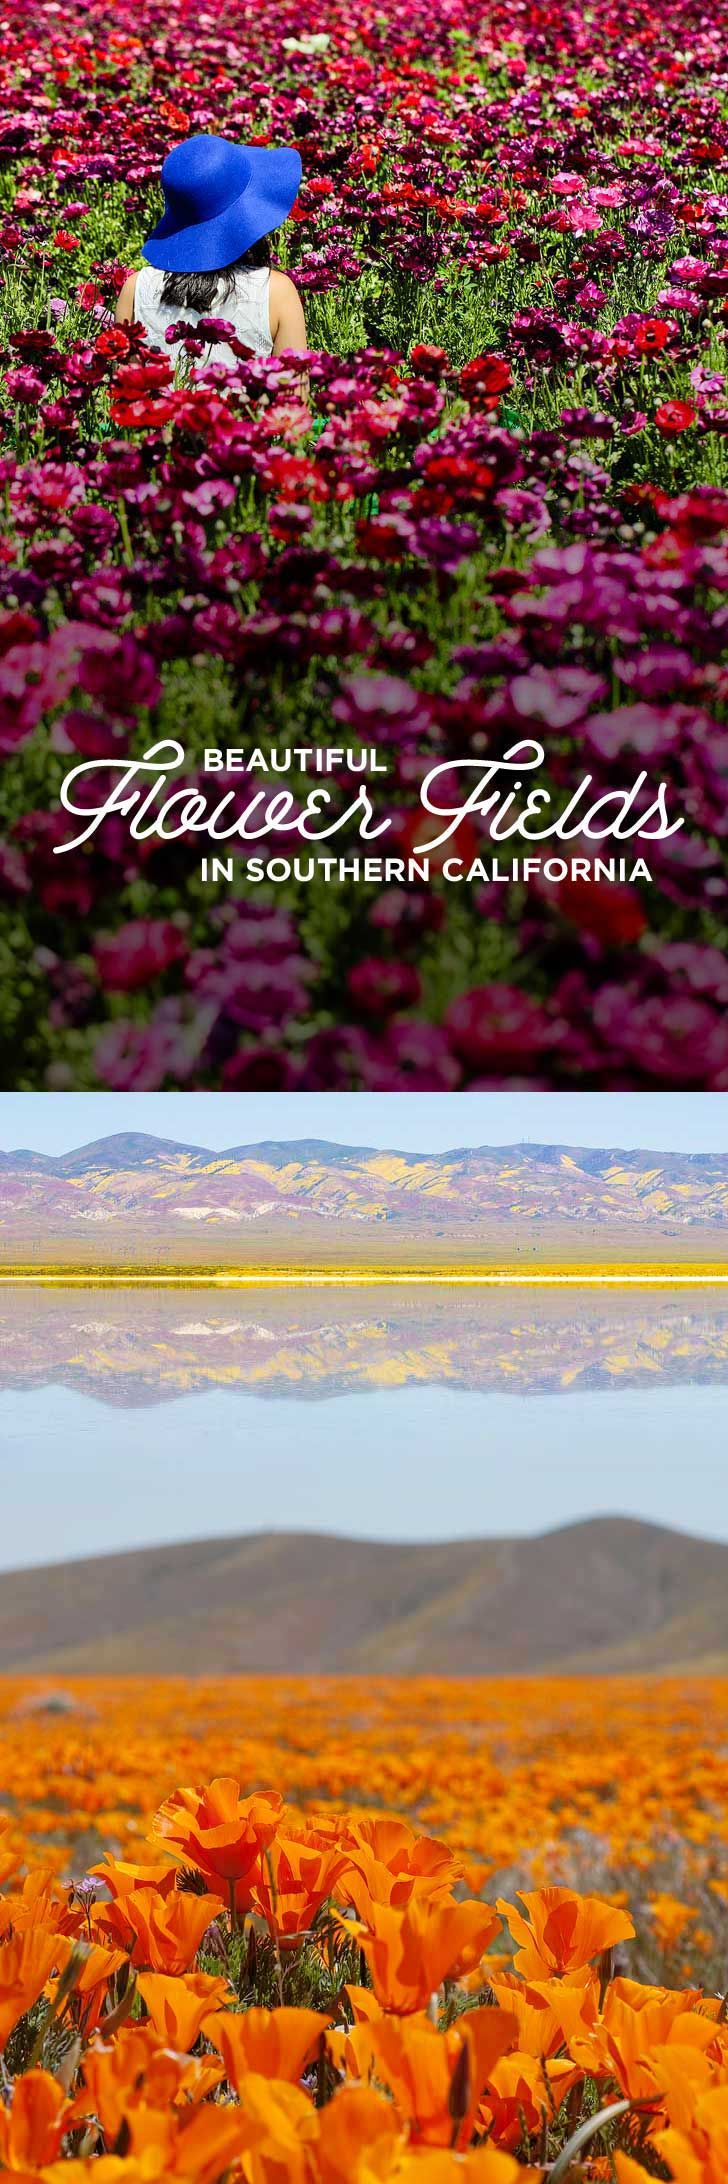 11 Beautiful Southern California Flower Fields You Must Visit This Spring // localadventurer.com